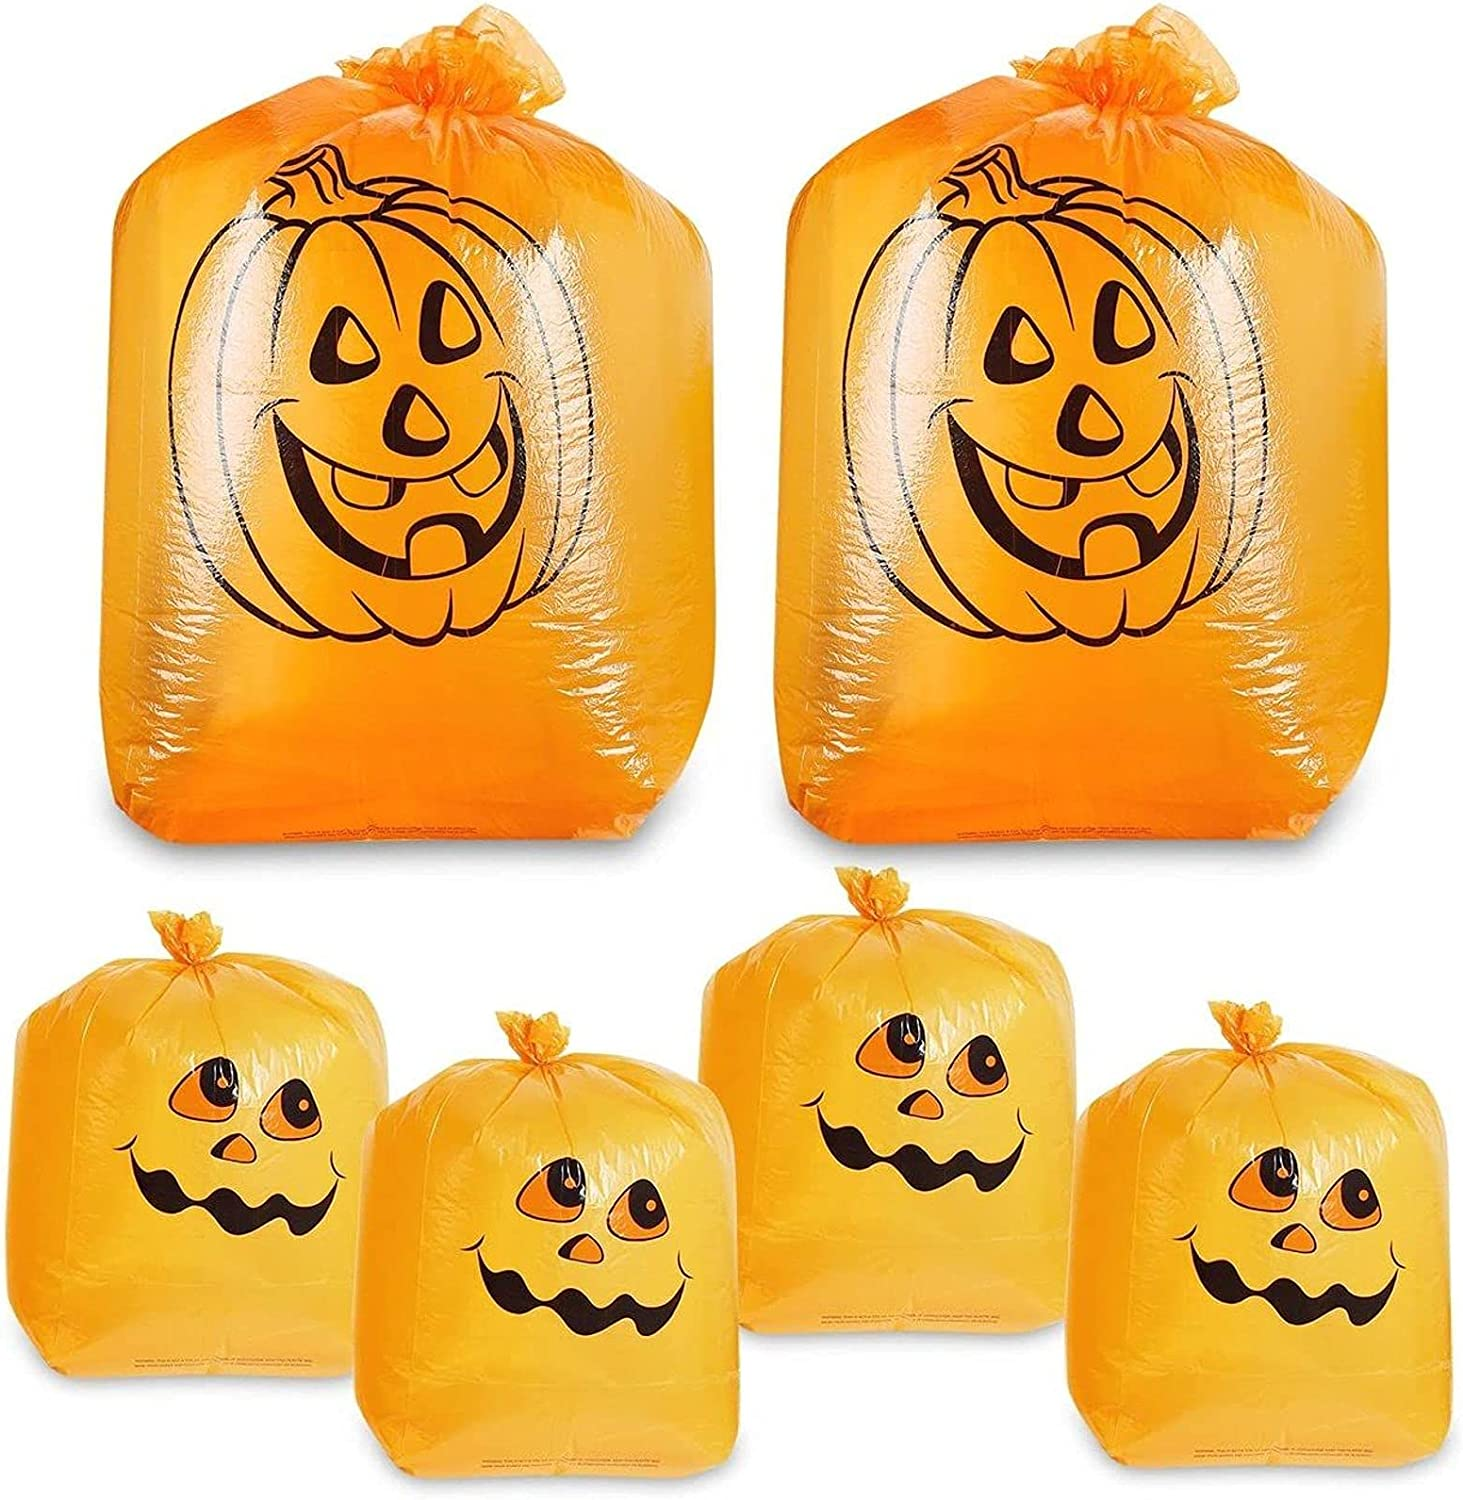 Juvale Pack of 6 Pumpkin Leaf Bag and Sized Pumpk Max 72% OFF We OFFer at cheap prices Small - Medium